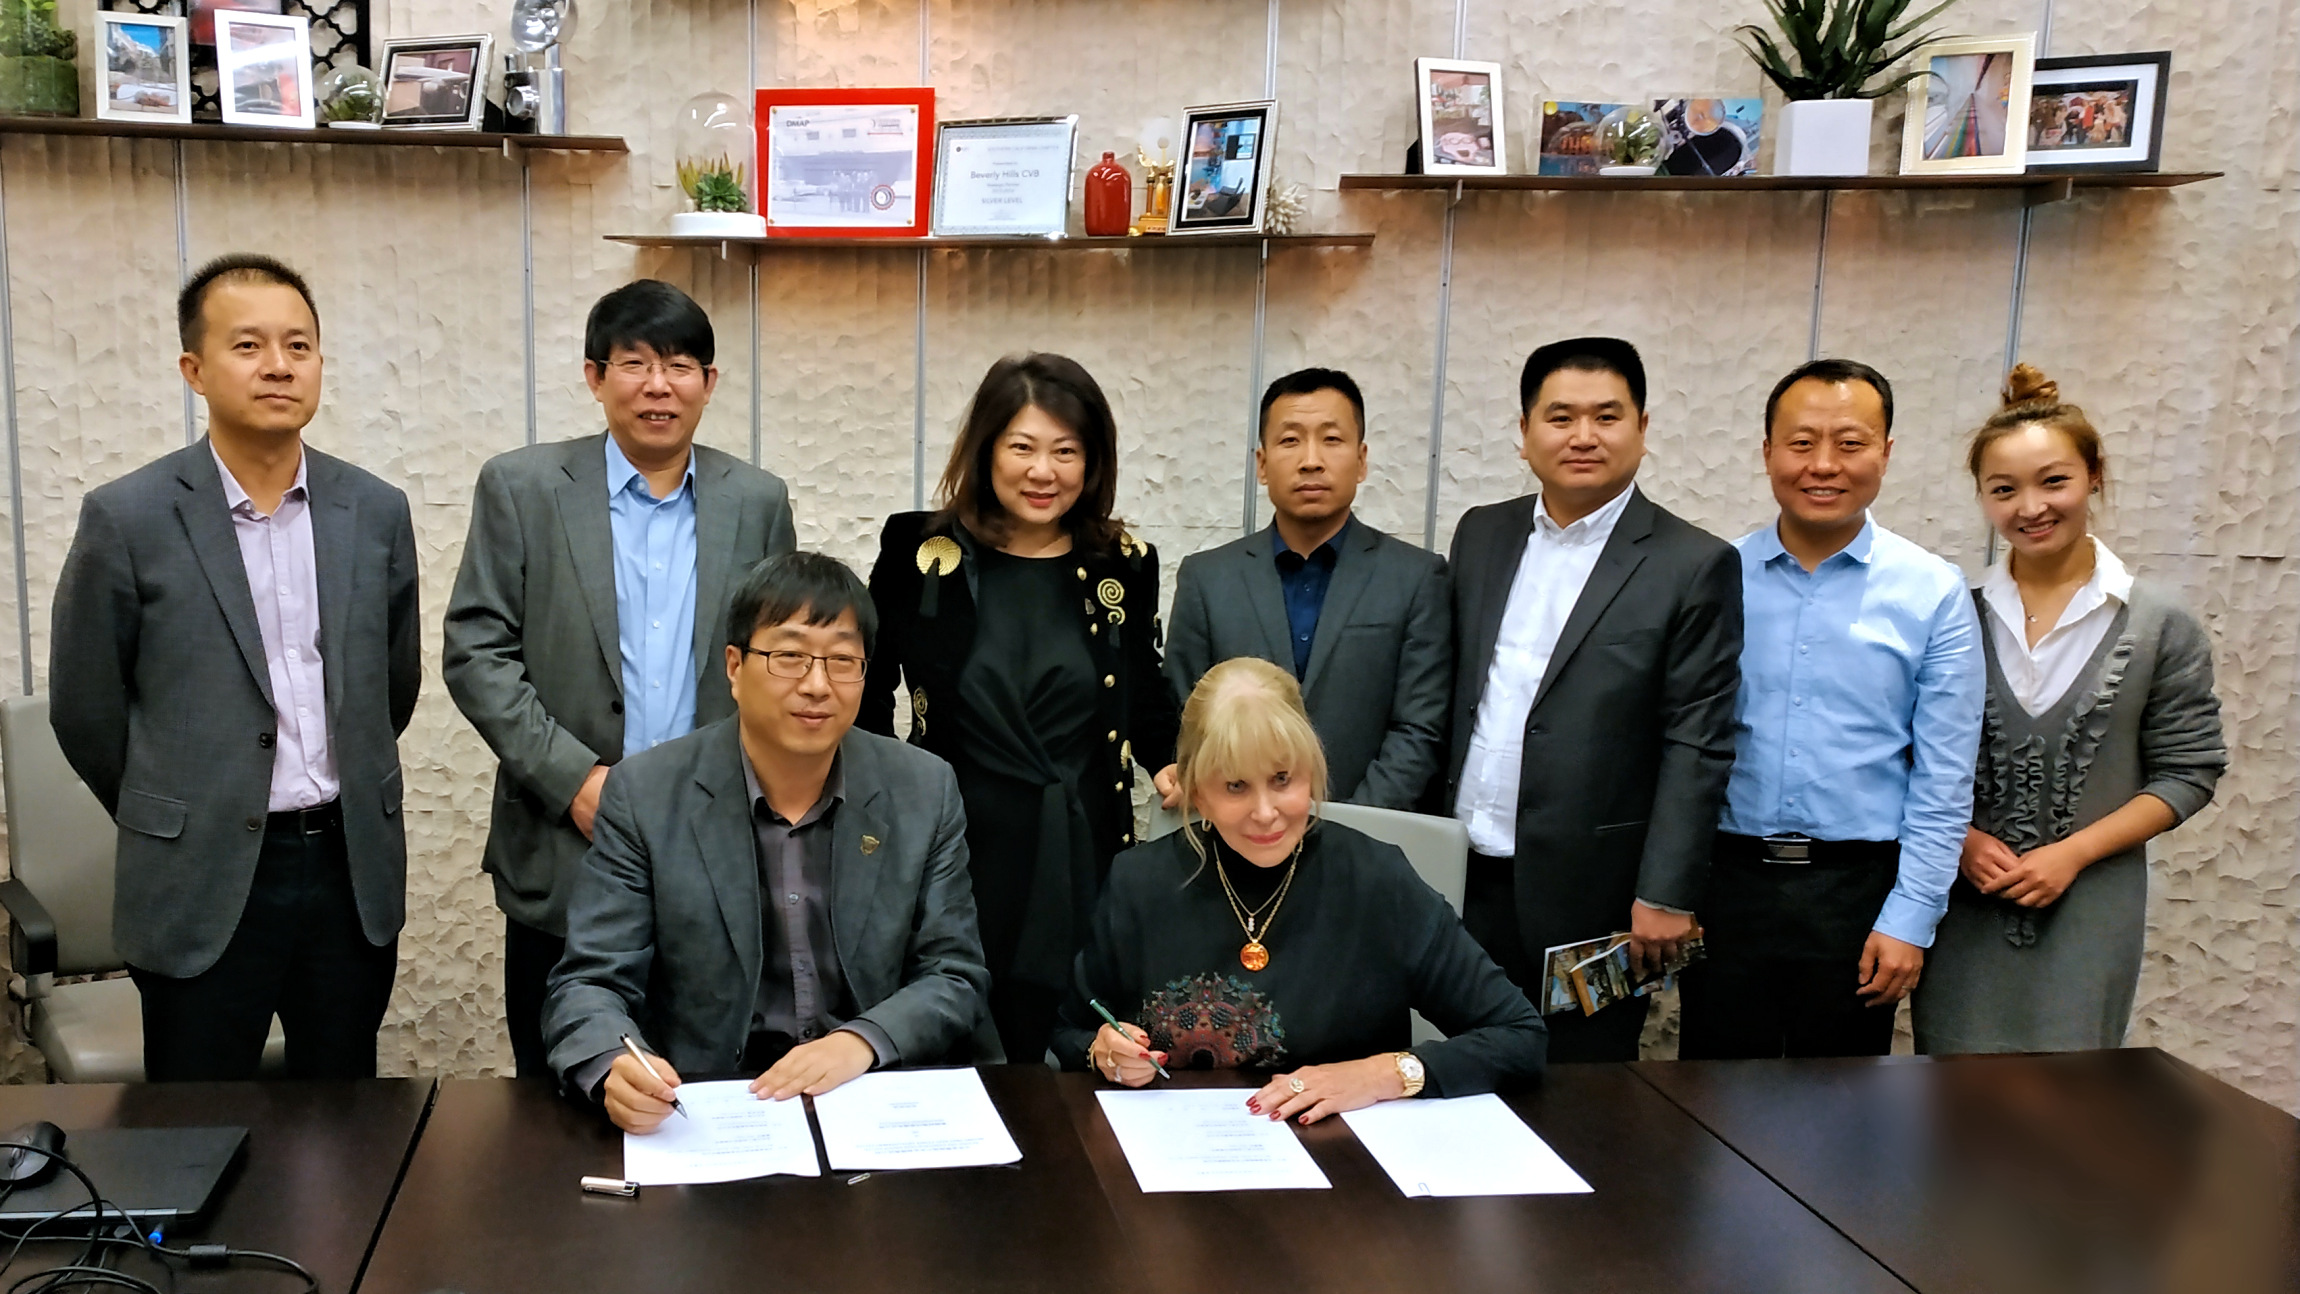 Donna Smith met with dignitaries of Beijing Jindi Real Estate Development Co.  at the Hollywood Chamber of Commerce